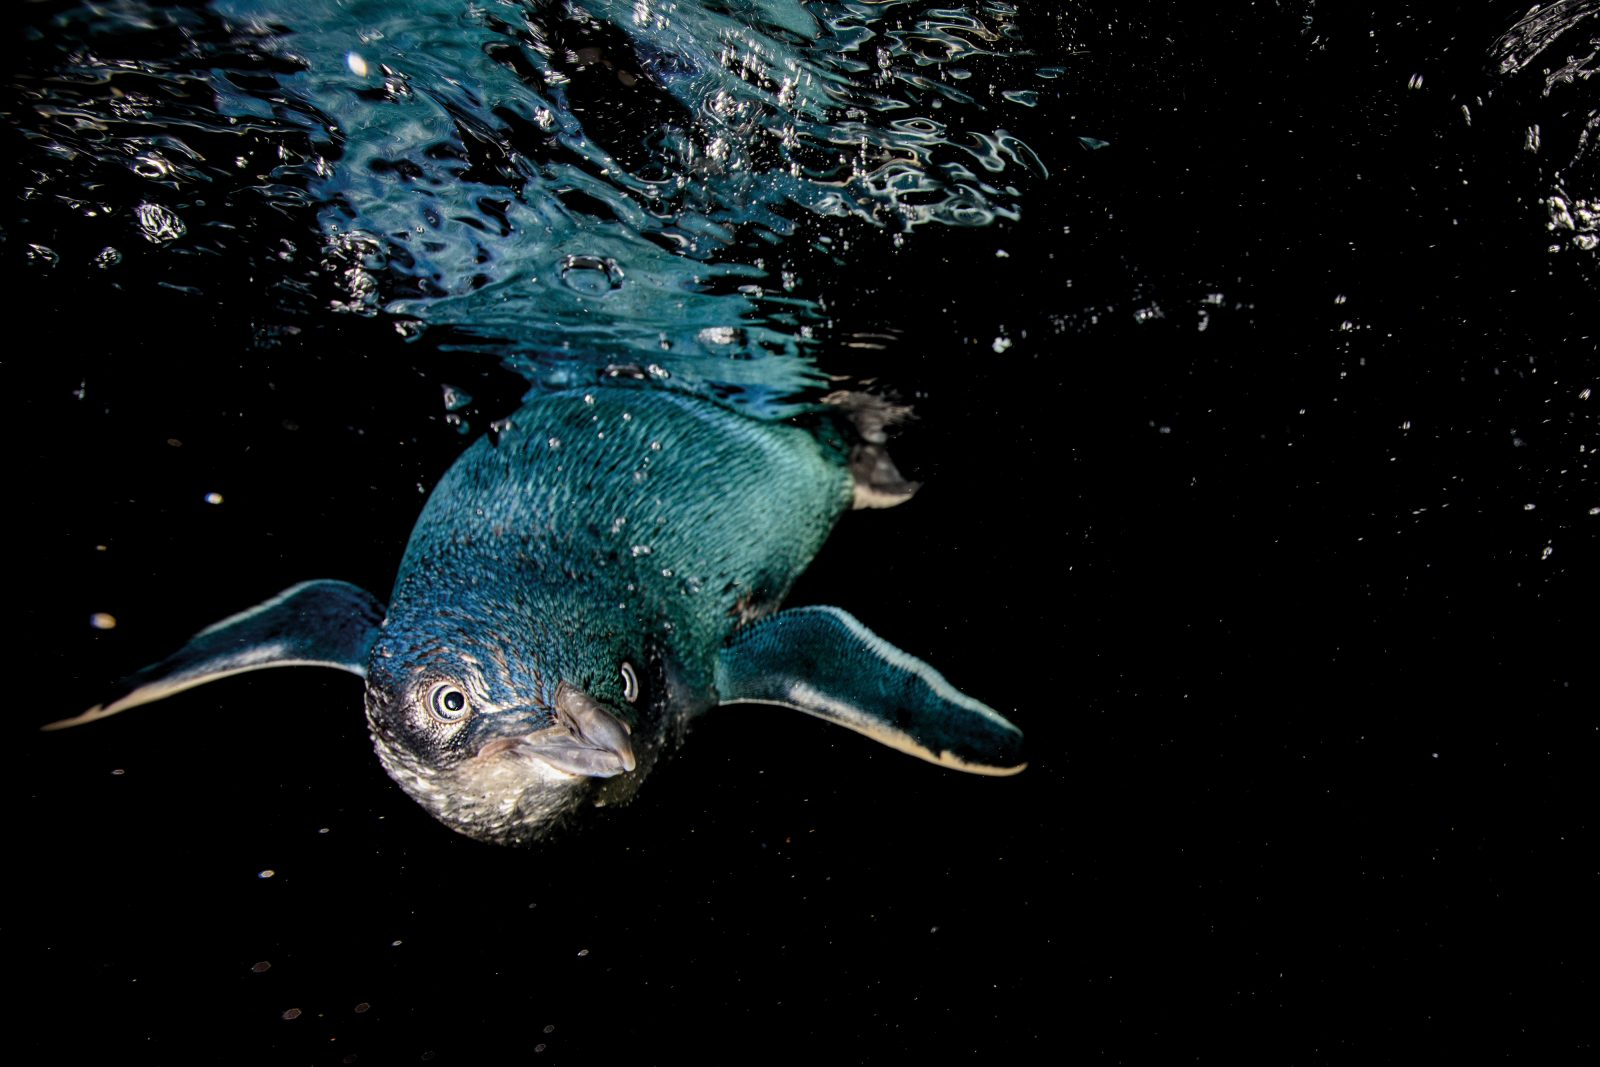 The little blue penguin's unique sheen is created by nanostructures in the feathers that scatter light in such a way as to create an aquatic hue. Interlocking feathers are a penguin's waterproof insulation from the cold that would otherwise kill them, so they take meticulous care of them—carefully preening and oiling their plumage after each swim. They must remain ashore for several weeks during their annual feather moult, during which time they are unable to feed and lose a lot of condition.